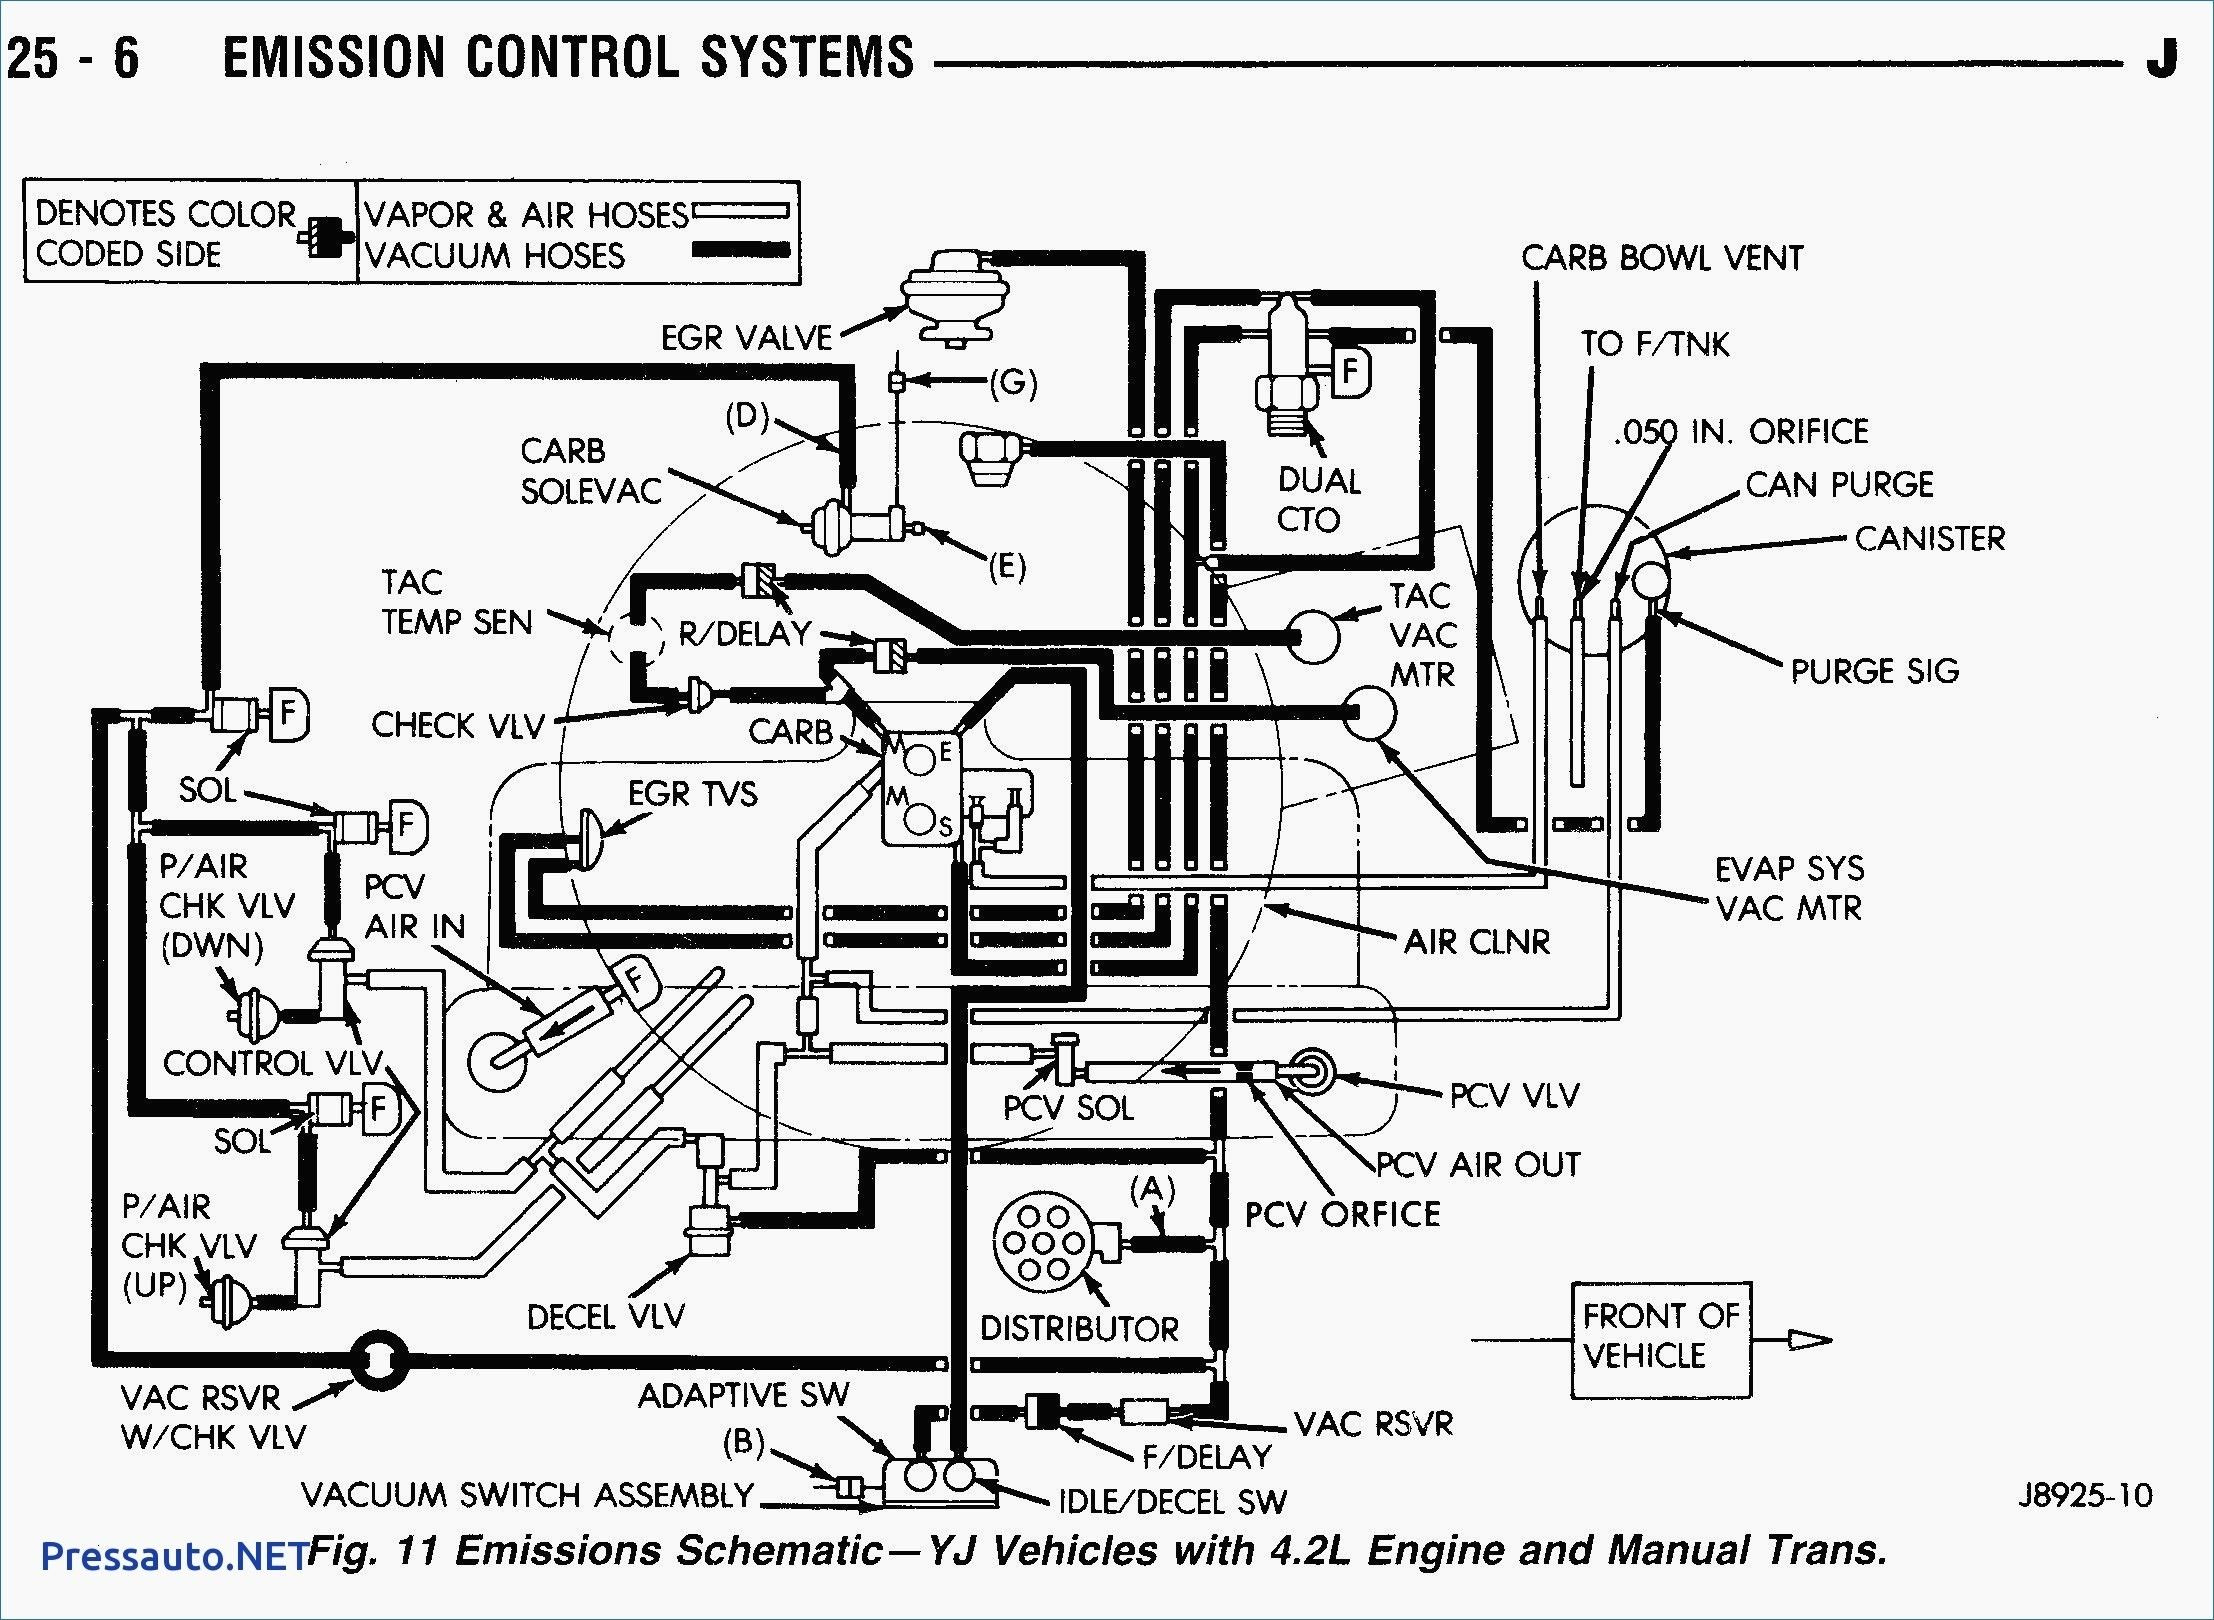 wiring diagrams jeep 1988 wrangler 1988 wrangler 4 2l engine blogjeep 4 2 engine vacuum diagram [ 2214 x 1620 Pixel ]